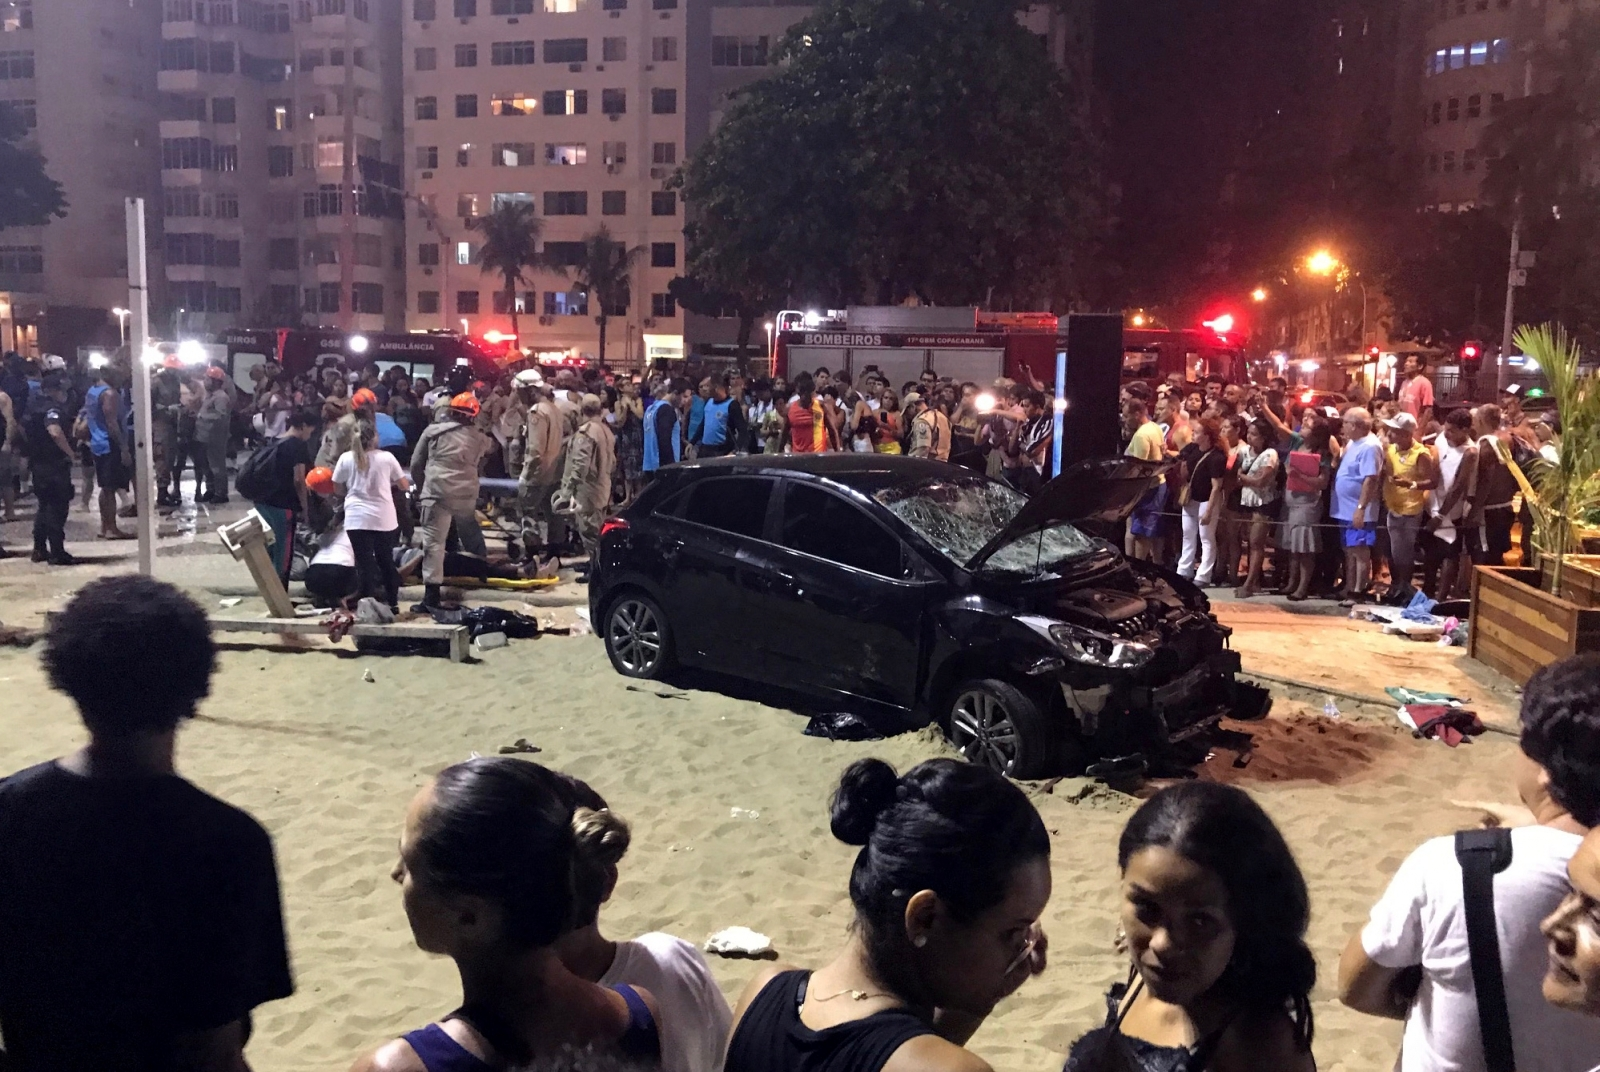 Copacabana beach incident